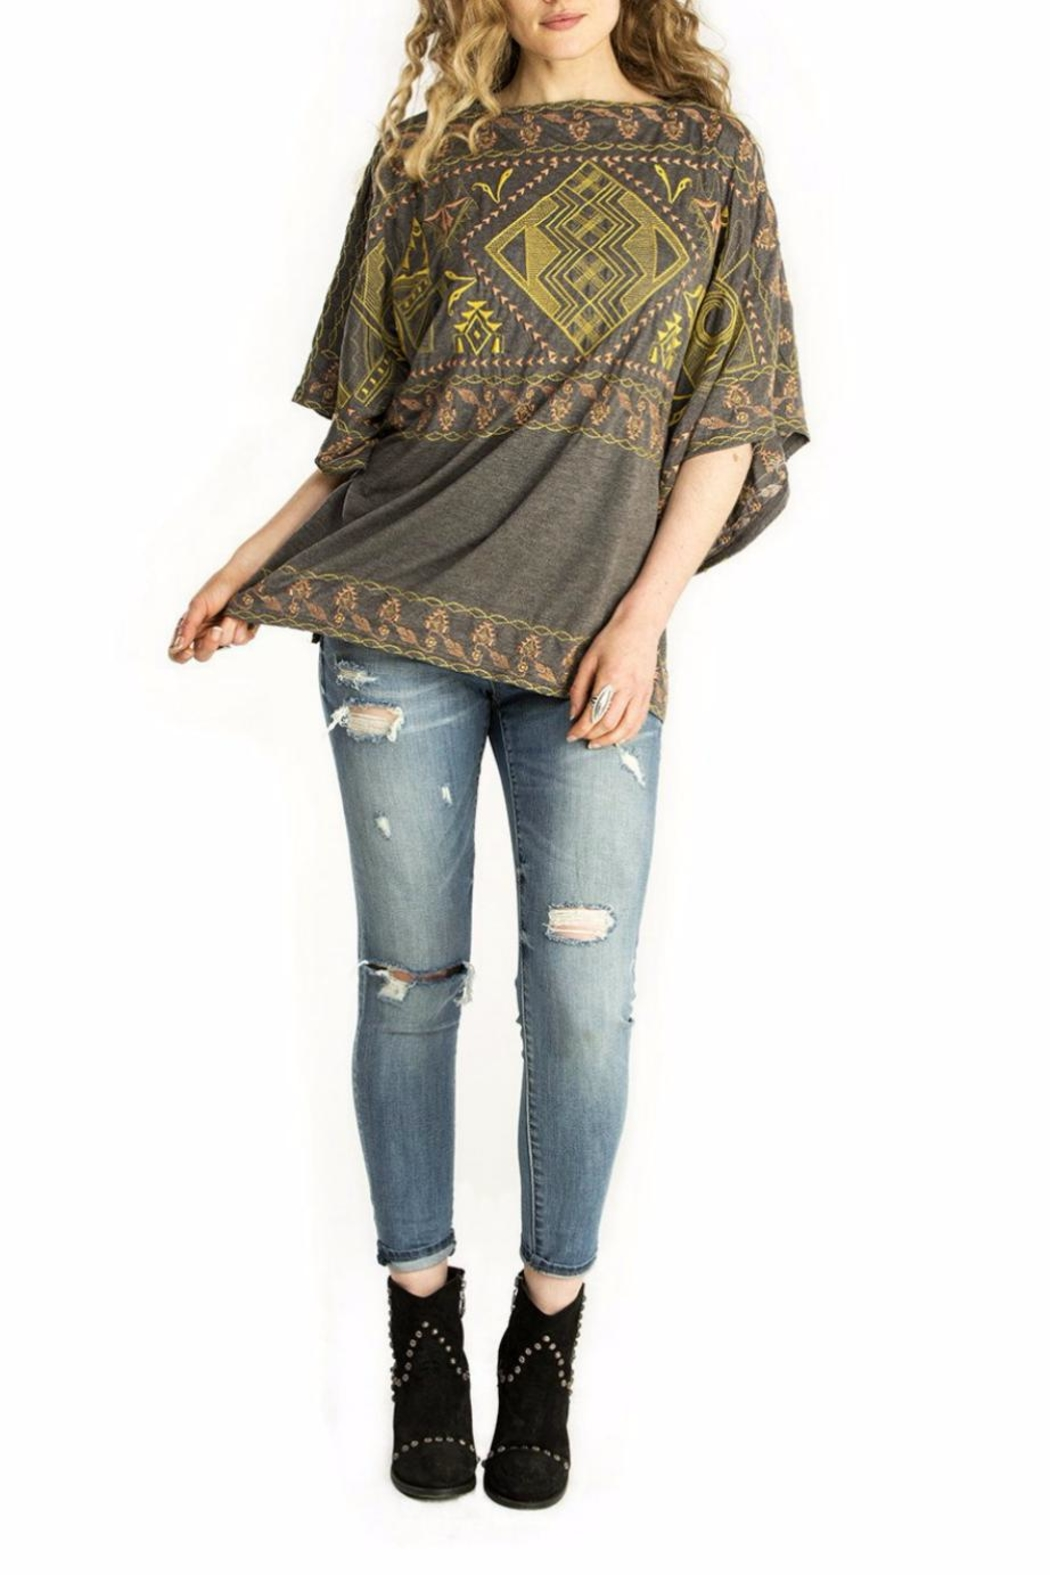 Double D Ranchwear Oversize Embroidered Tunic Top - Main Image